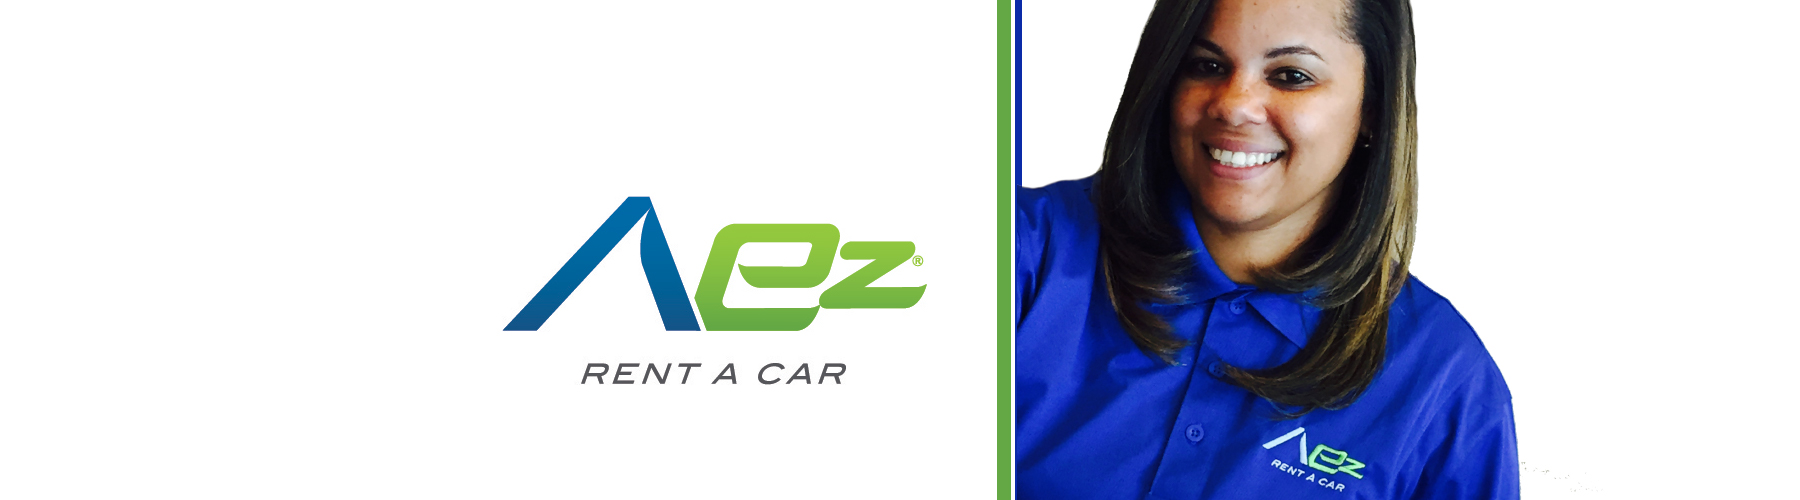 Hertz car rental. Find great prices with Hertz, see customer ratings - and book online, quickly and easily. Search for rental cars Pick-up Location. Rental Location. Return car to the same location. Drop off. Pick-up Date: E-Z Rent-a-Car Car Rental /